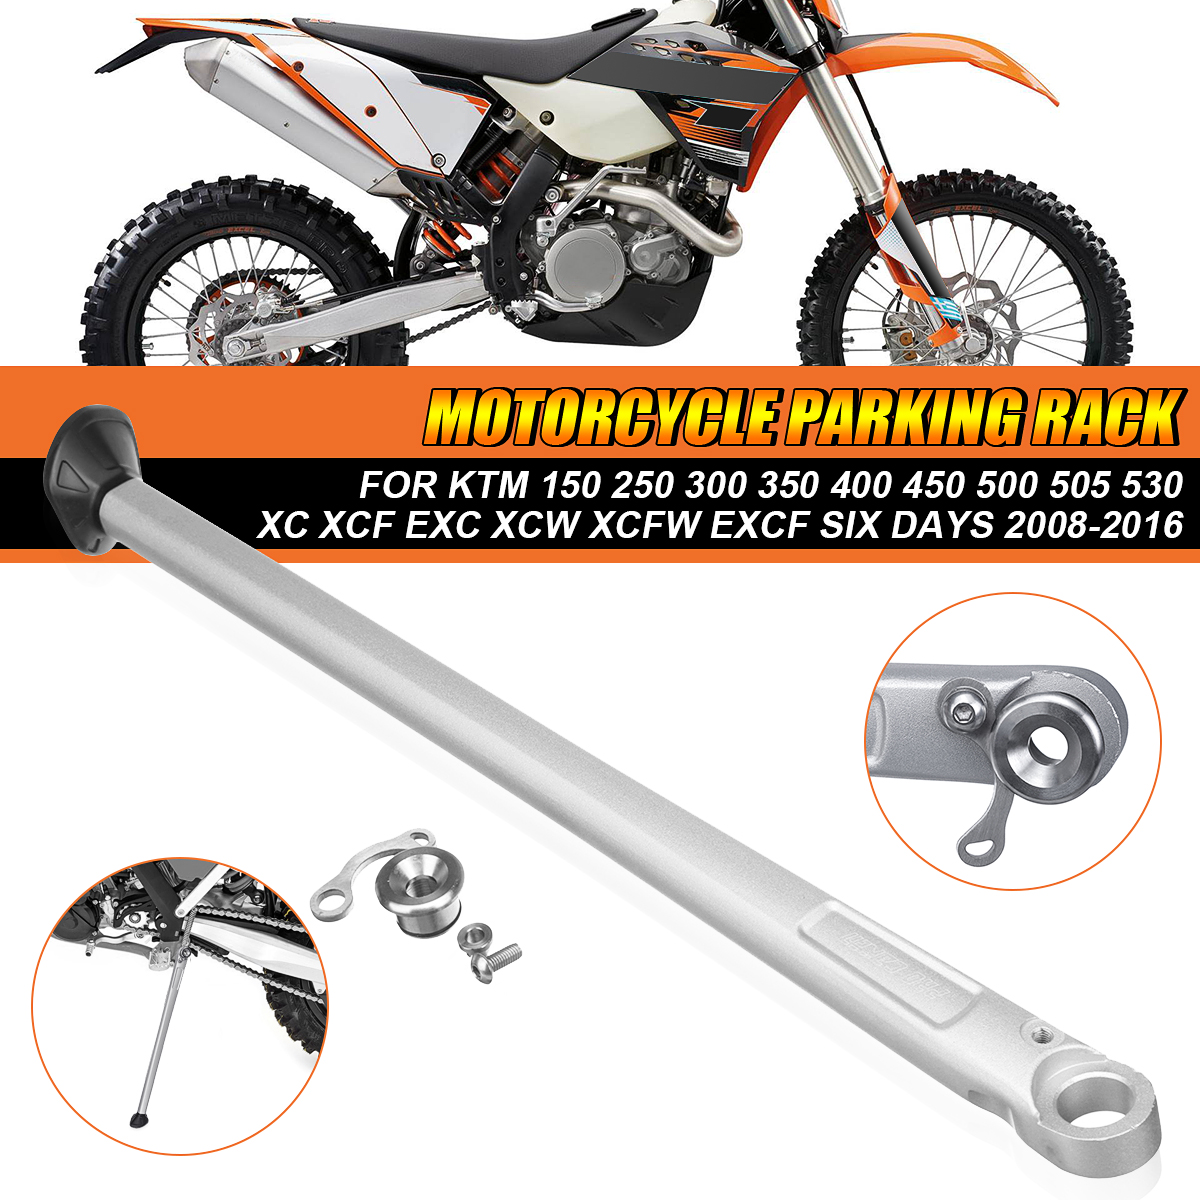 7075 Aluminum Alloy Forged Kickstand Side Stand For KTM Husqvarna Husaberg XC XCF XCW XCFW EXC EXCW EXCF SIX DAYS XCR FE TE 125 150 200 250 300 350 390 400 450 570 500 501 530 Dirt Bike Black